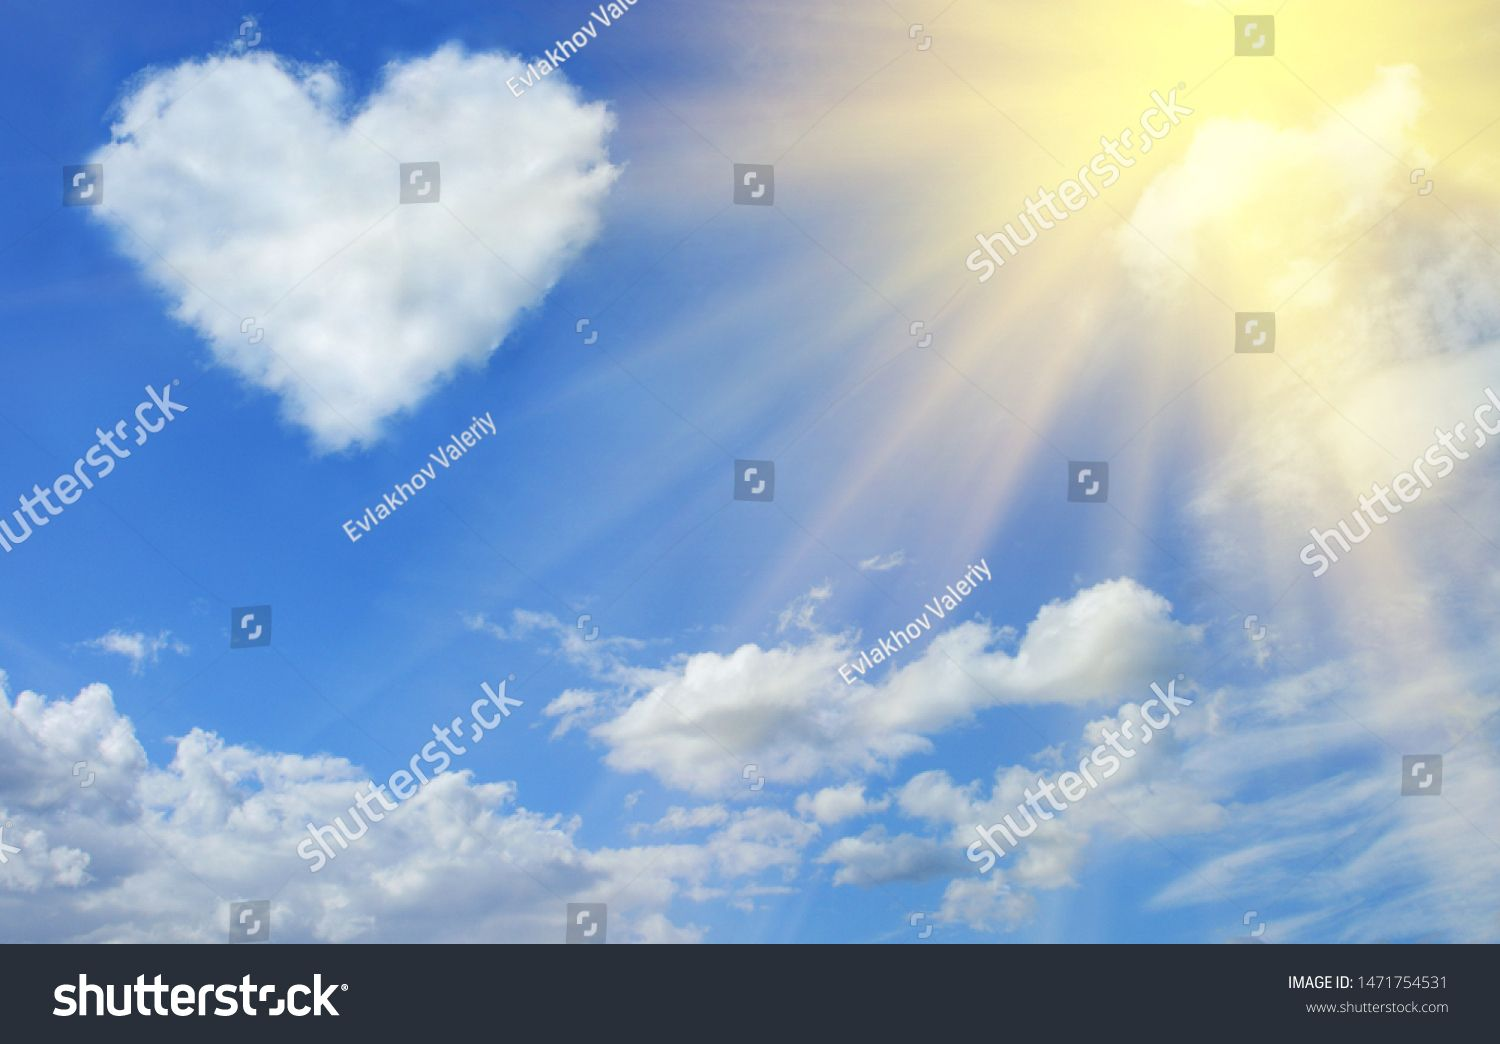 Heart Shaped Cloud In The Blue Sky And Sun Ad Sponsored Cloud Shaped Heart Sun Clouds Sun Stock Blue Sky